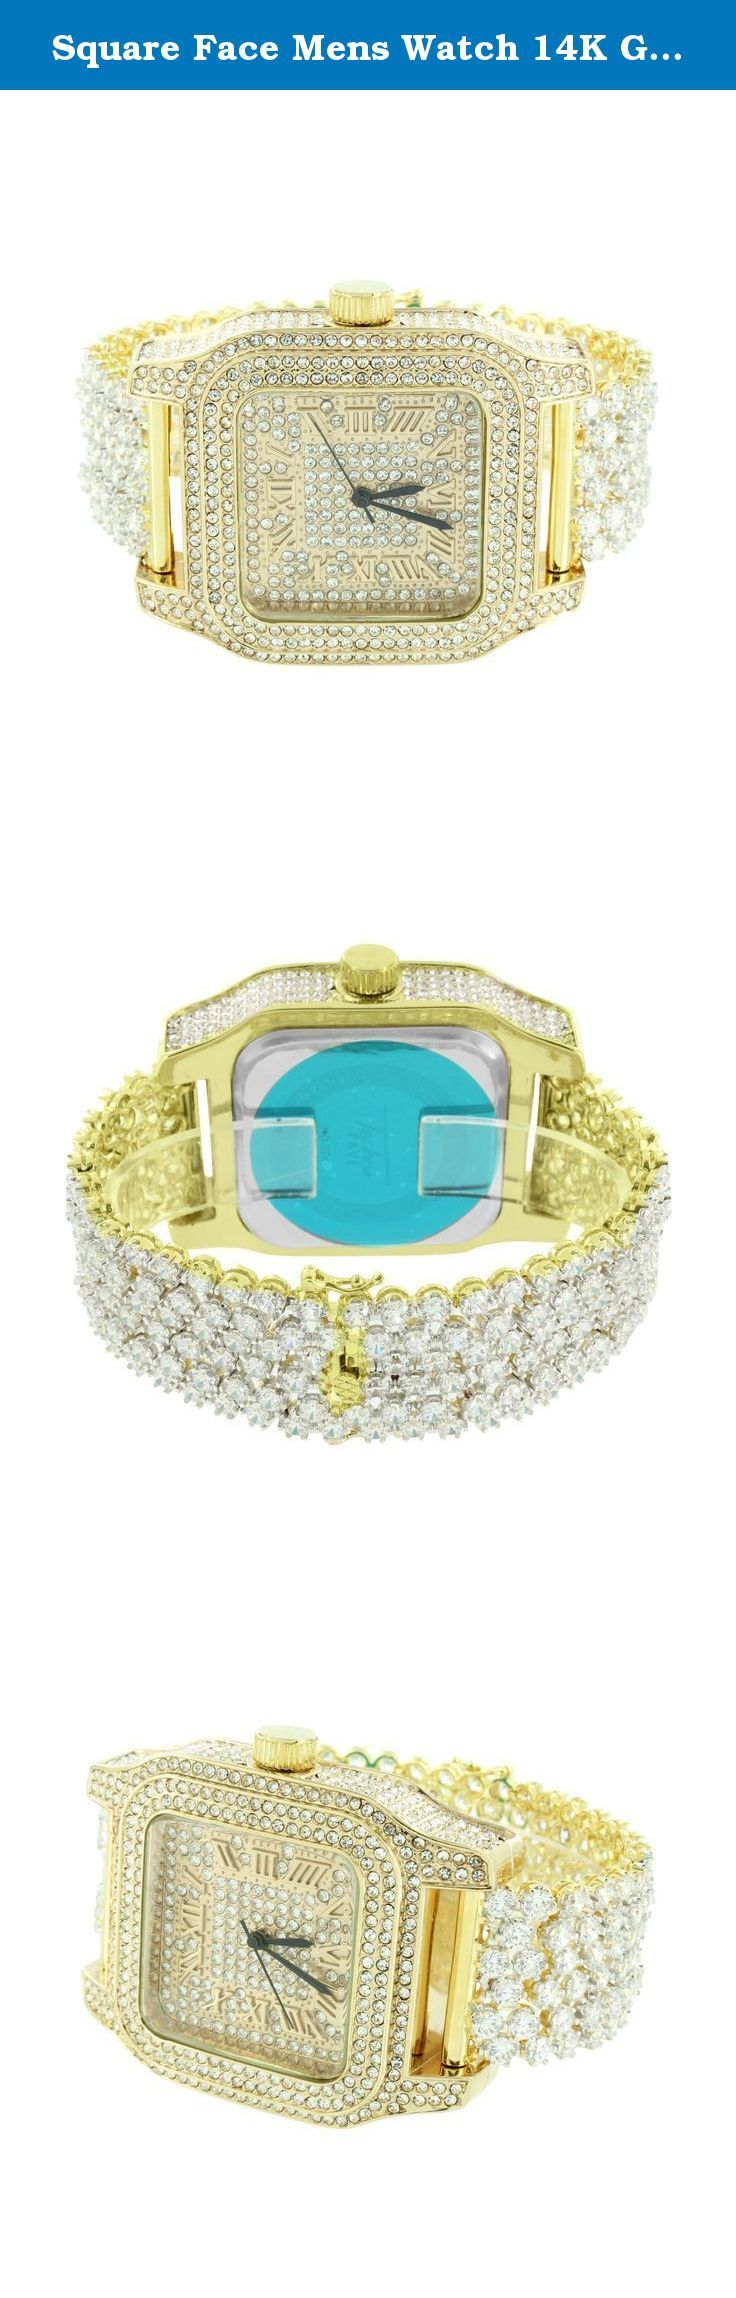 Square Face Mens Watch 14K Gold Finish Iced Out CZ Watch Prong Set Bracelet Jojo. - Custom Design Watch - Brand New - Simulated Diamonds The item listed here comes with a Gift watch box You Get FREE SHIPPING With This Purchase We specialize in custom jewelry. If you can think it, we can make it!.